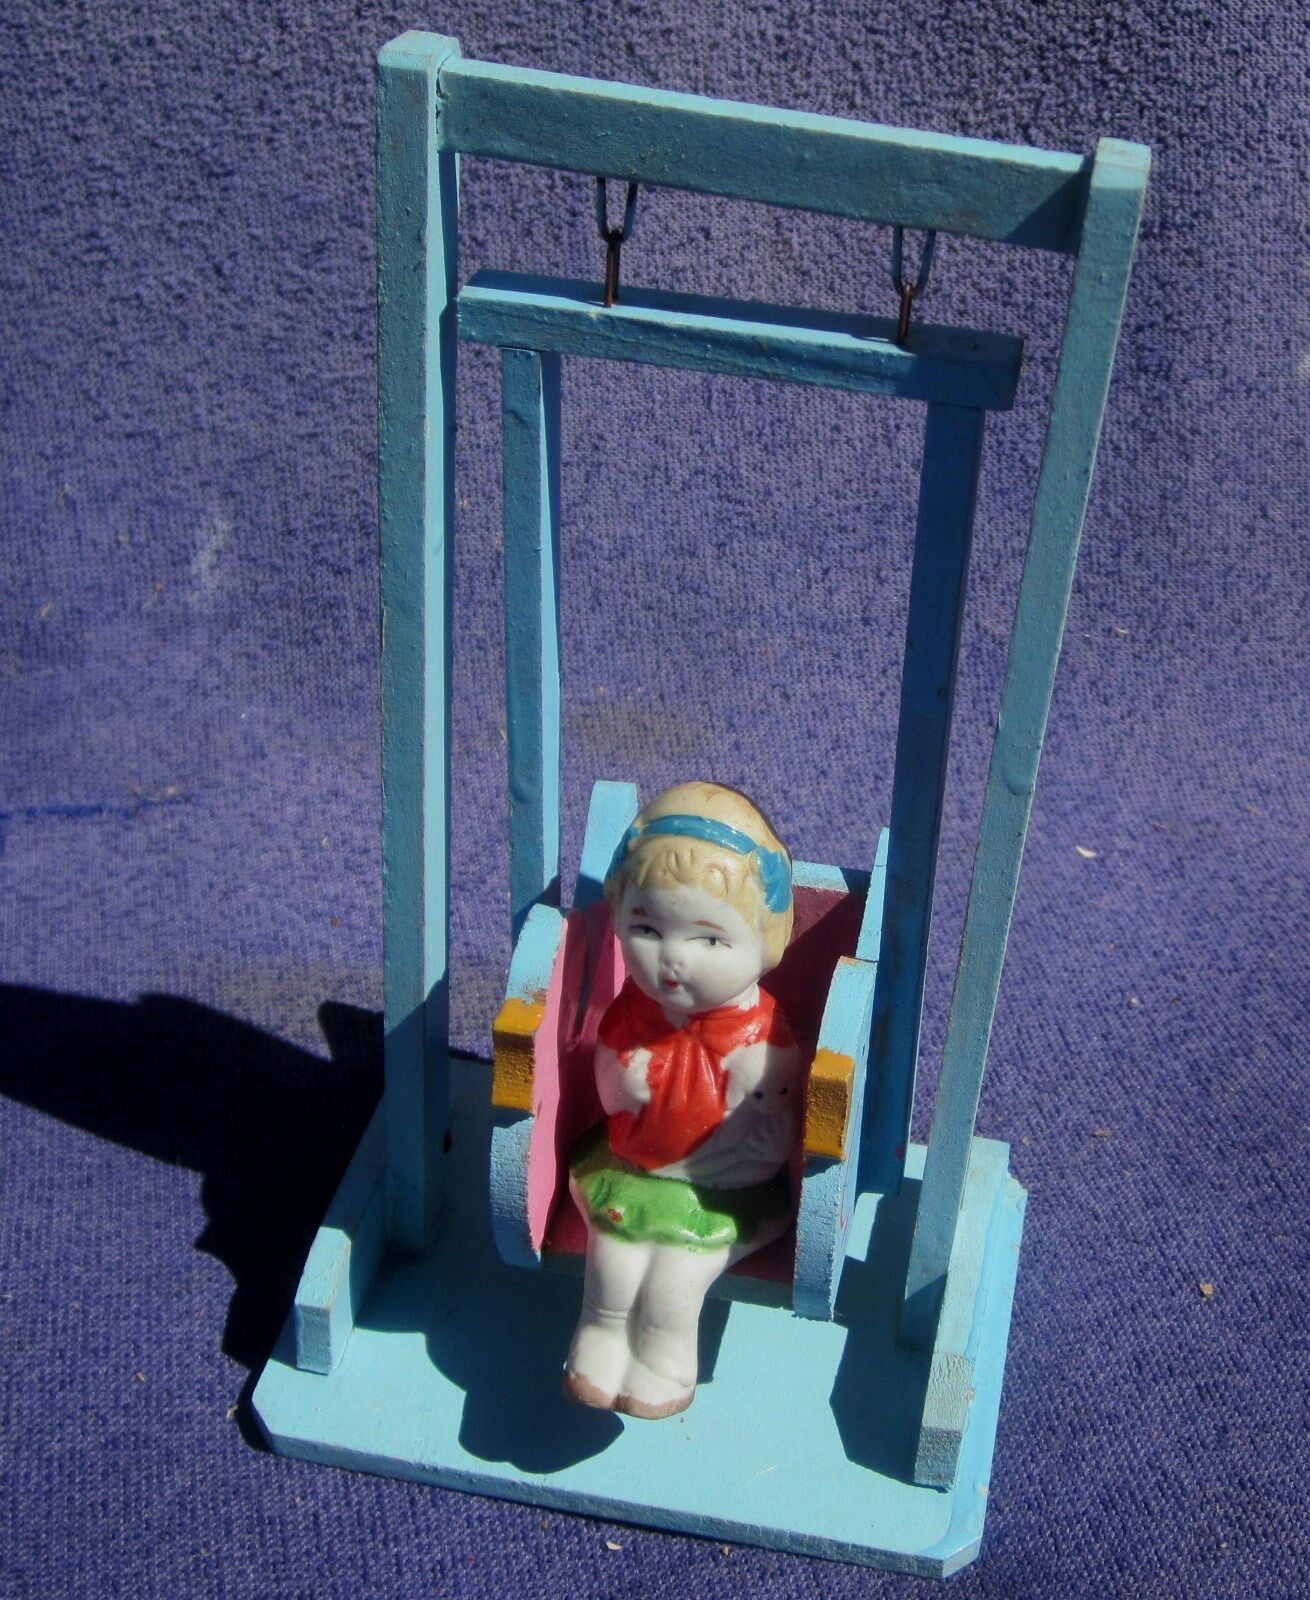 Rare 1920 30s Seated Porcelain Doll on azul Wood Standing Swing NOS from Store